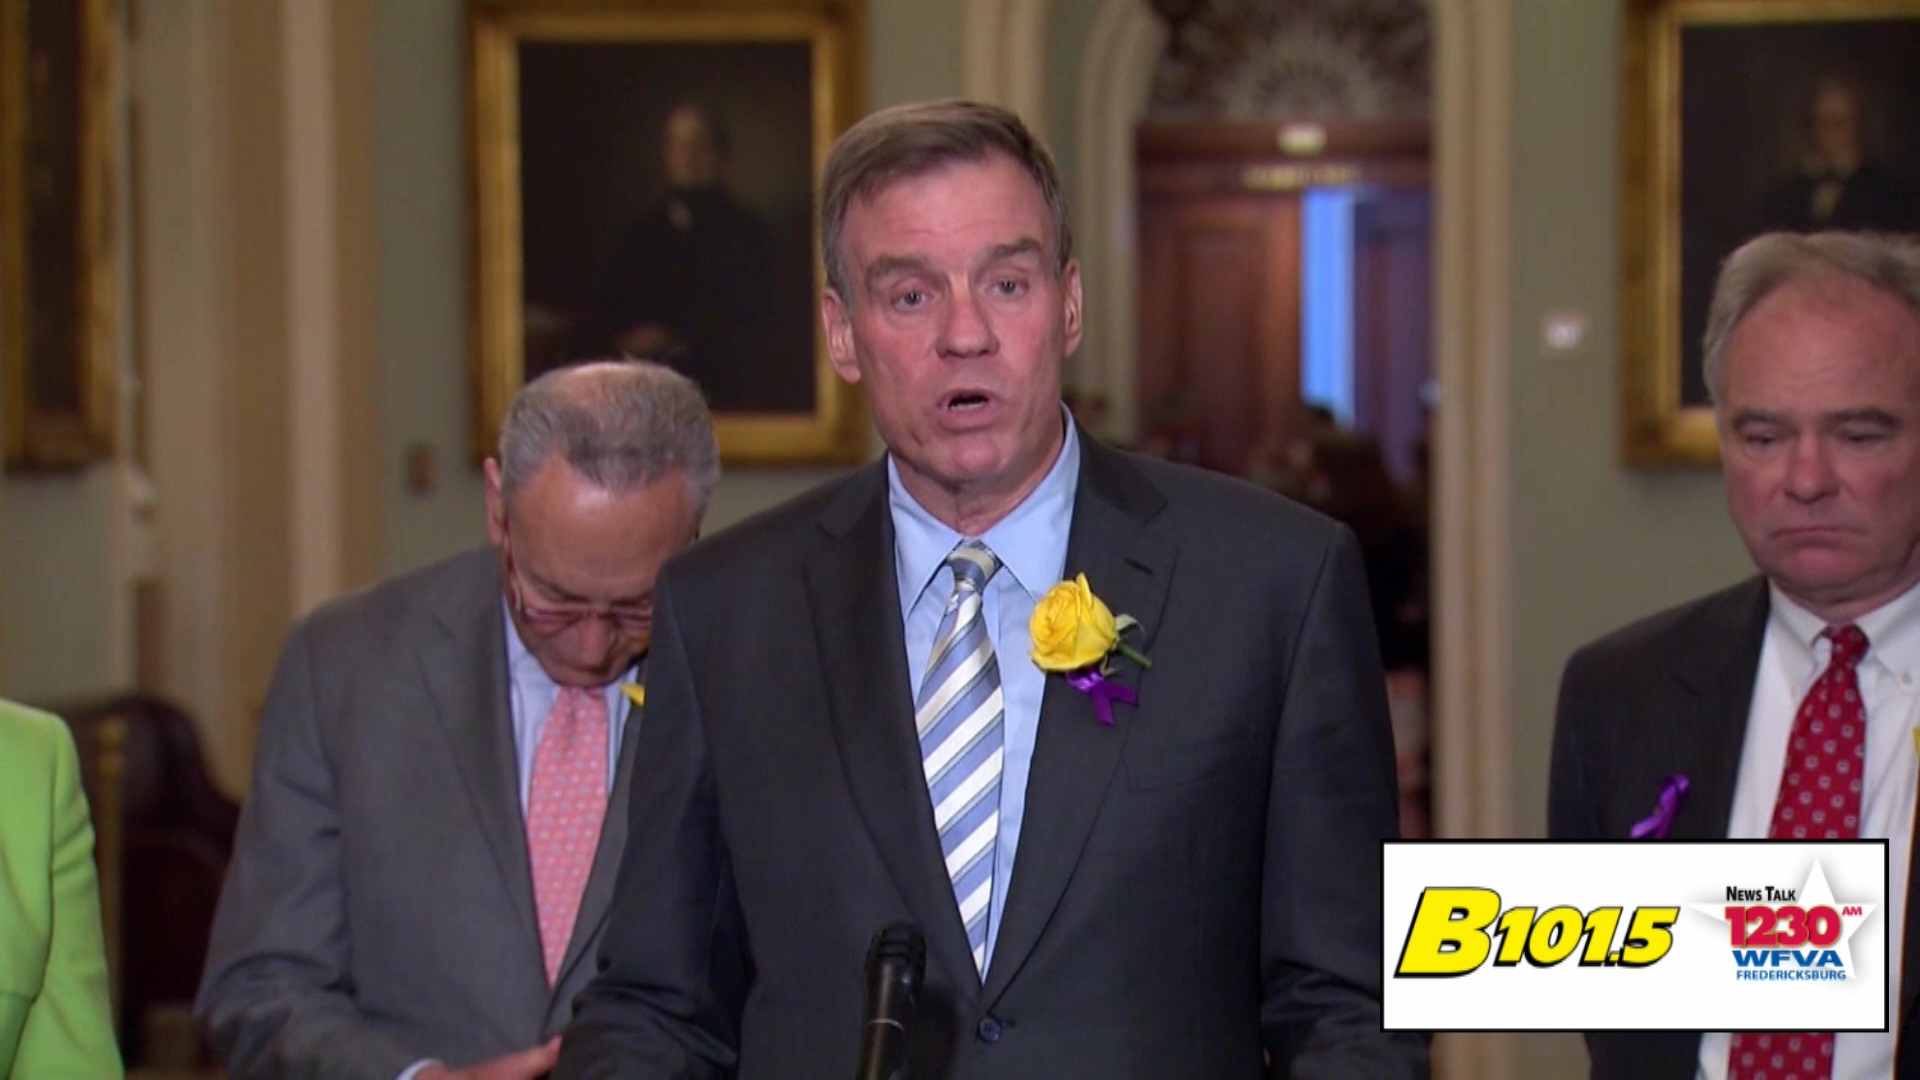 Warner and Kaine call on Congress to take steps to reduce gun violence